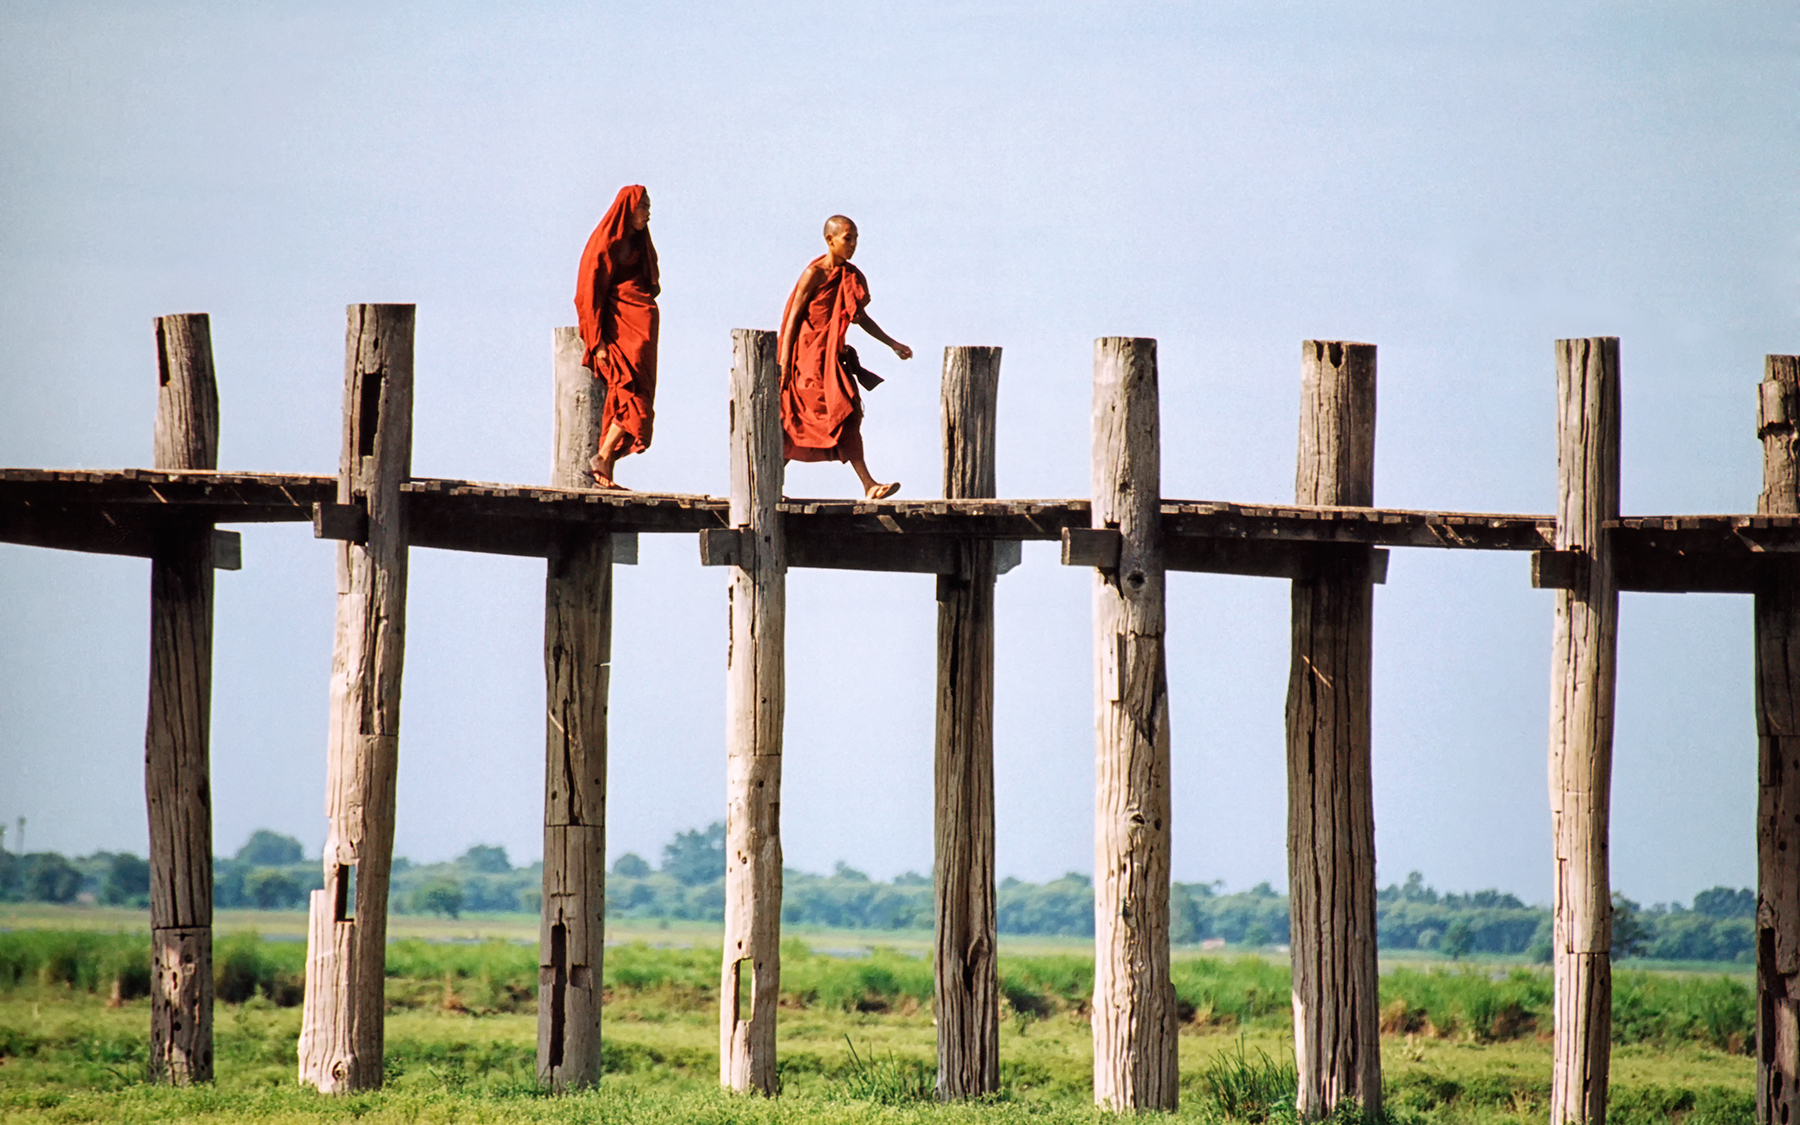 Buddhist monks walking across U bein's Bridge, Myanmar (Burma), Amarapura, near Mandalay. U bein's Bridge was built in 1850, crossing Lake Taungthaman; it is the longest teak wood bridge in the world (.75 miles or 1.2 kilometers long). The peaceful surroundings and beautiful scenery make it a wonderful place to sit, relax and watch life go by. Amarapura was a former capital of Myanmar (Burma).